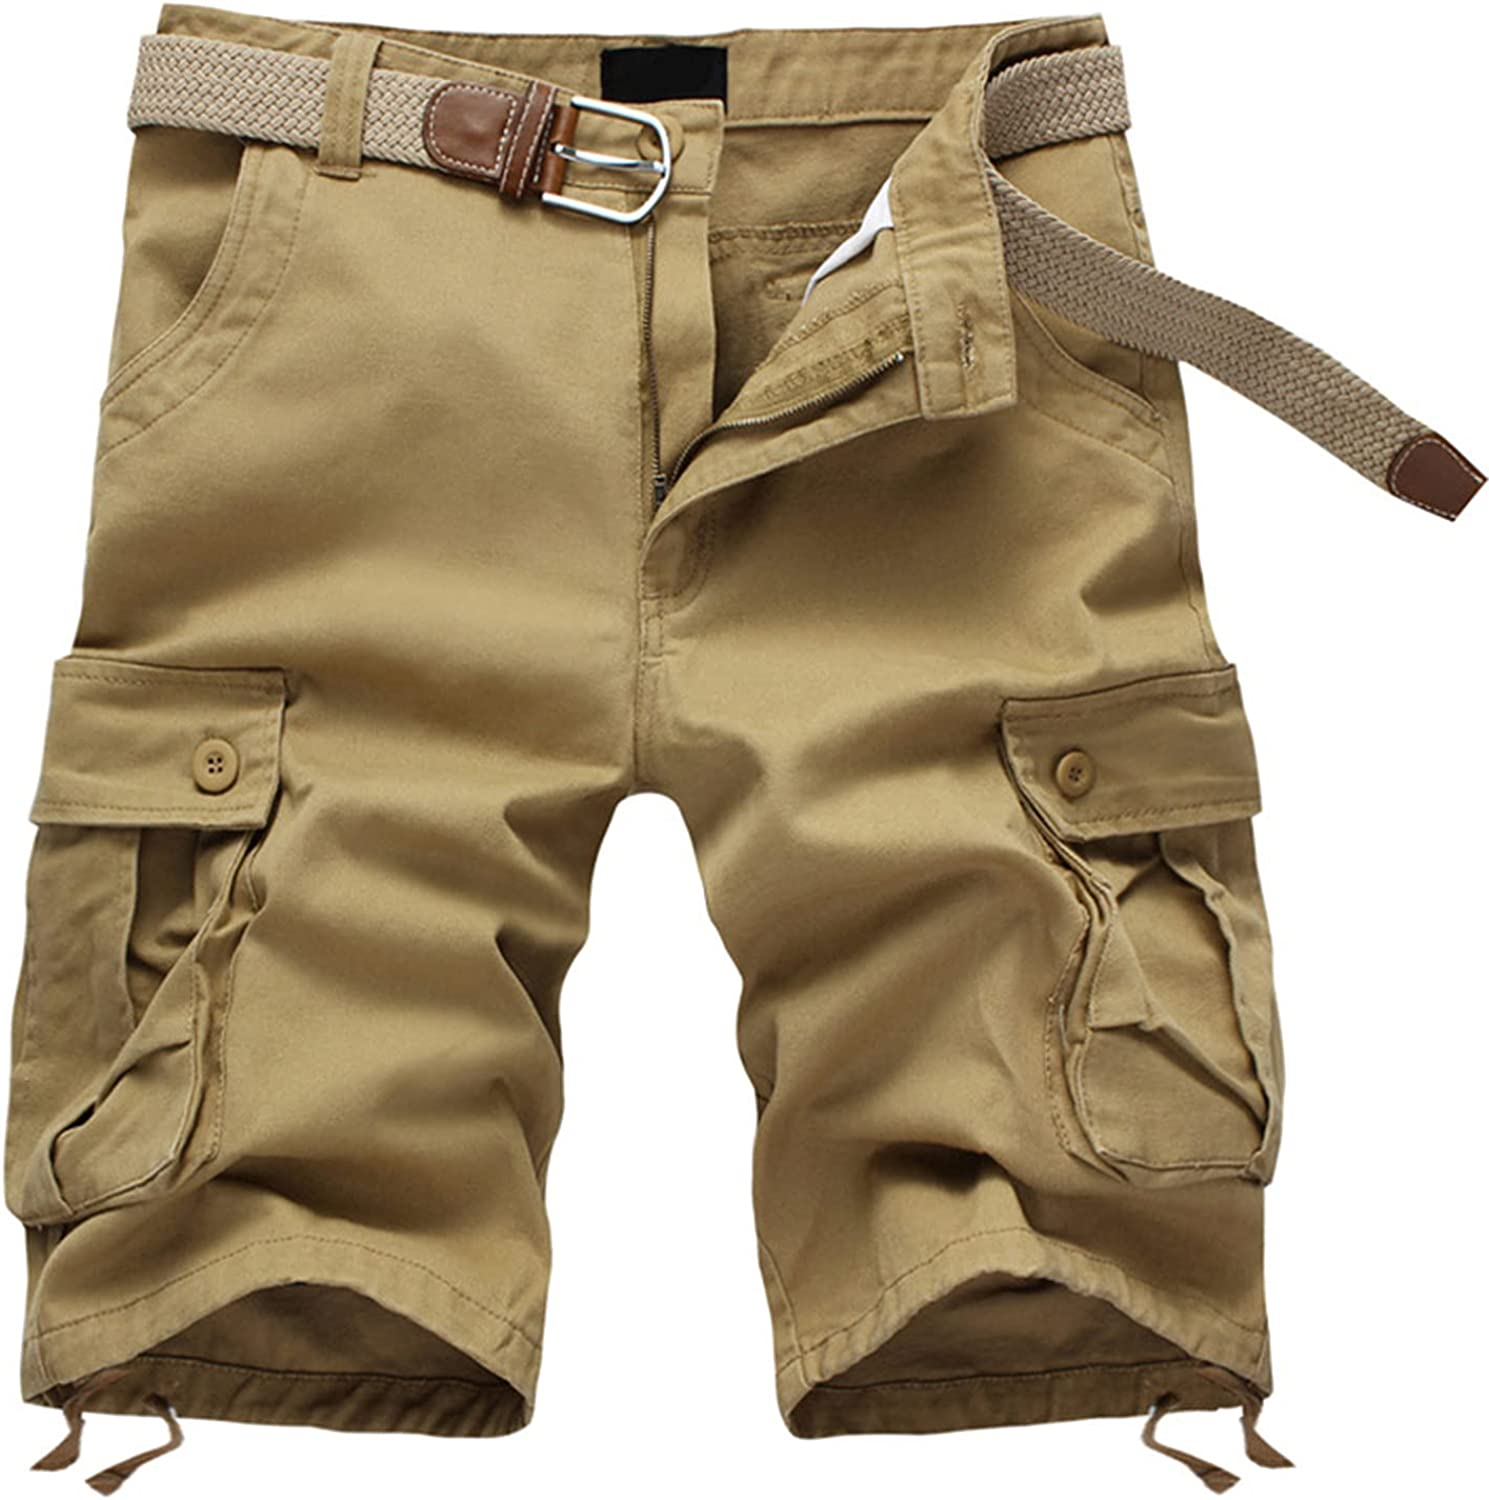 Cargo Shorts Memphis Mall for Men with Pockets Sh Big Oakland Mall Outdoor and Hiking Tall